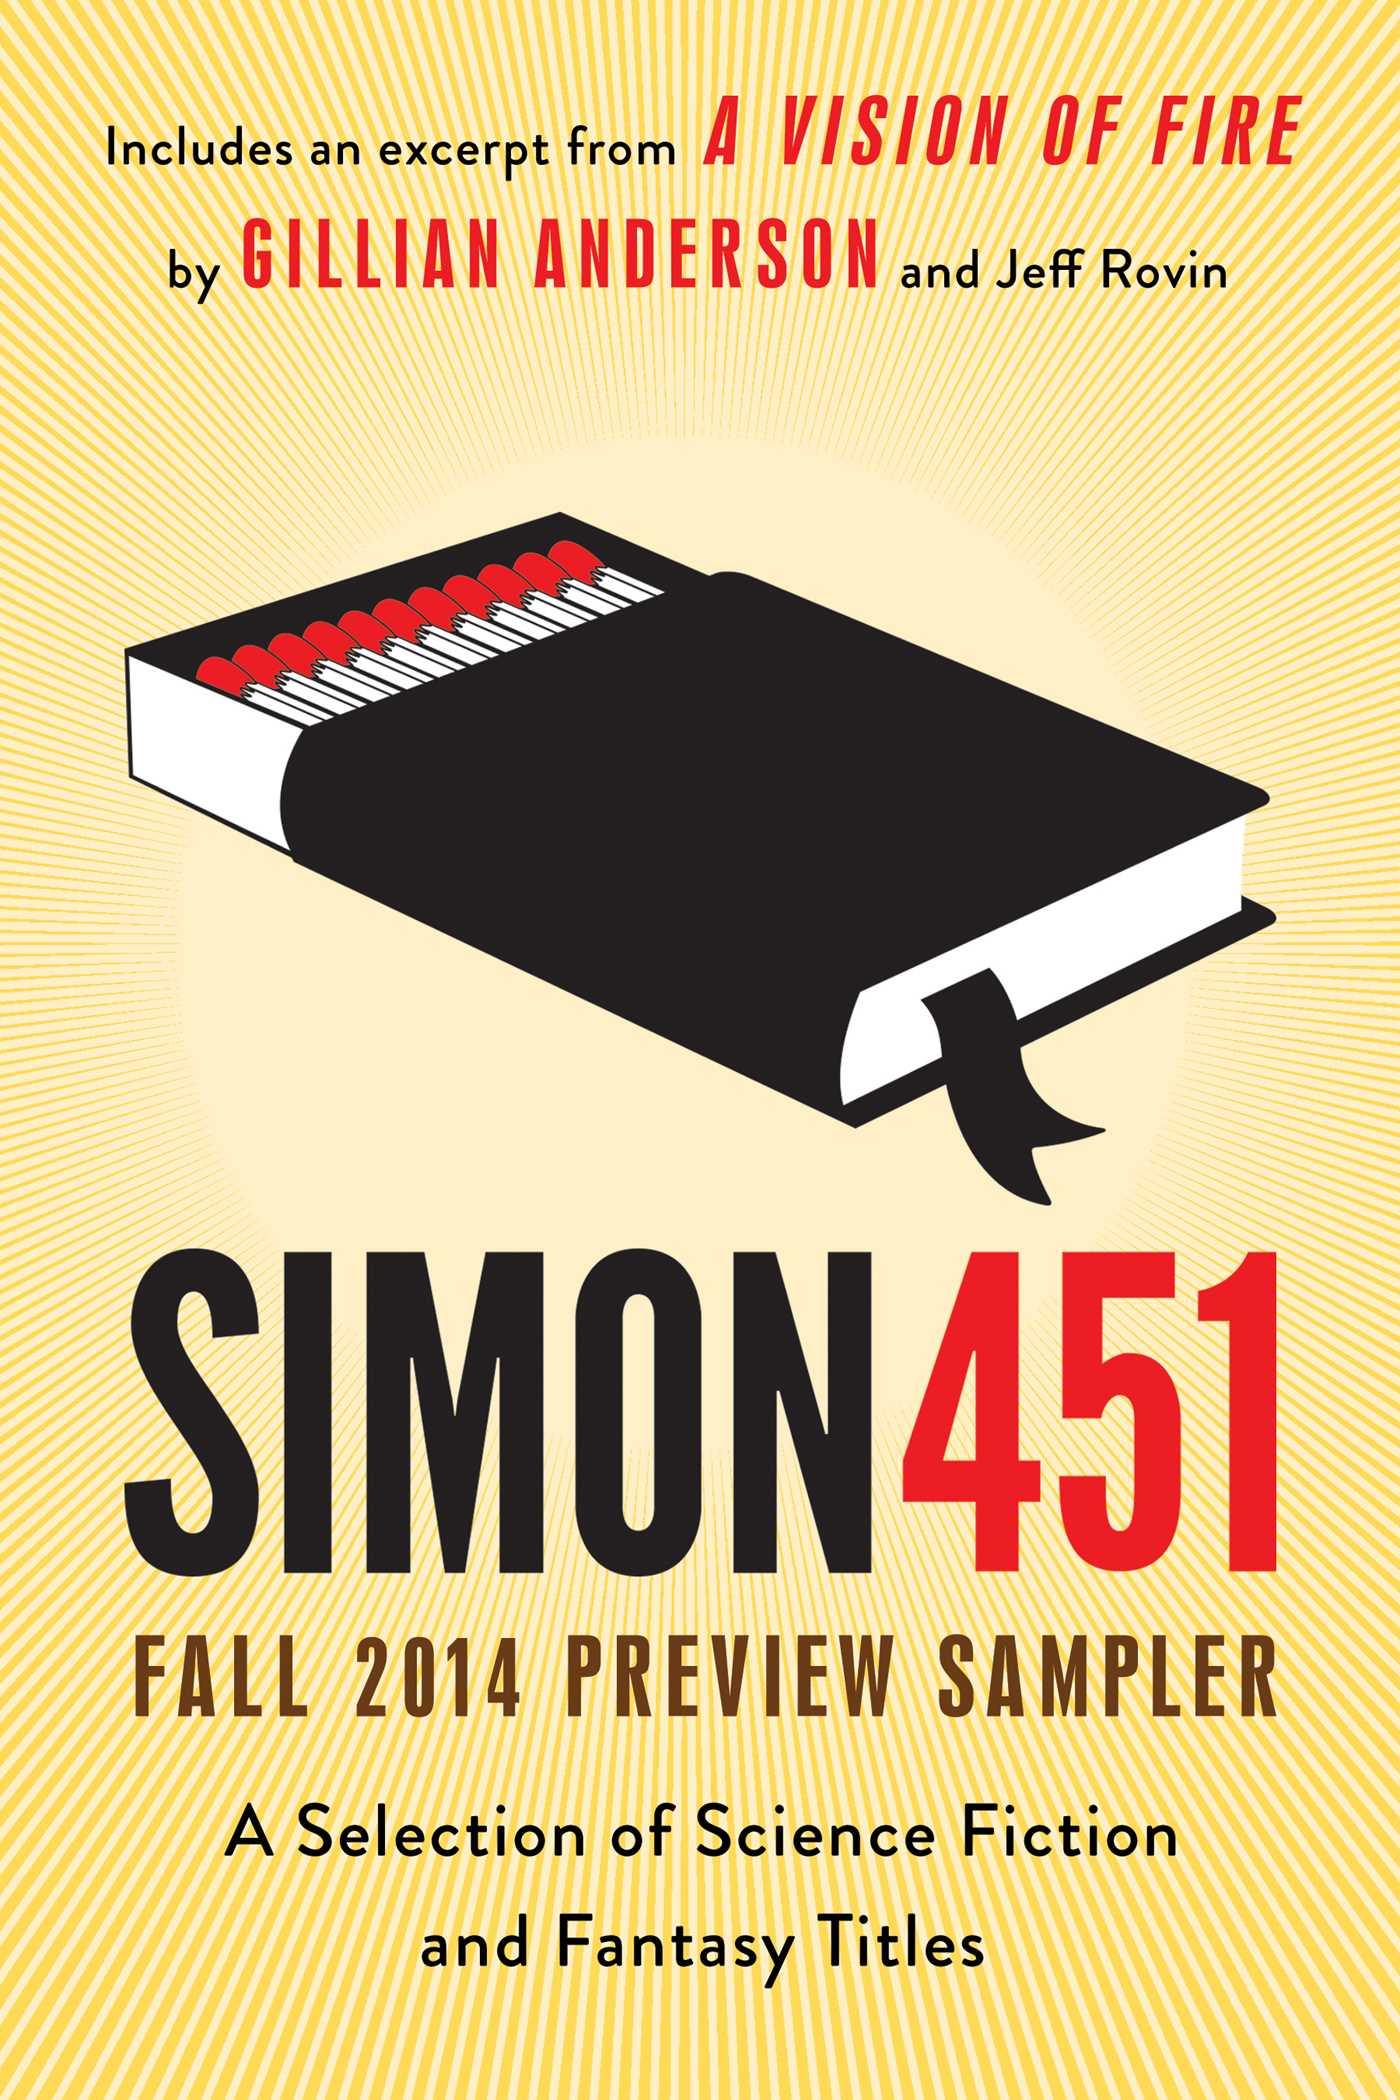 Simon451-fall-2014-preview-sampler-9781476791999_hr